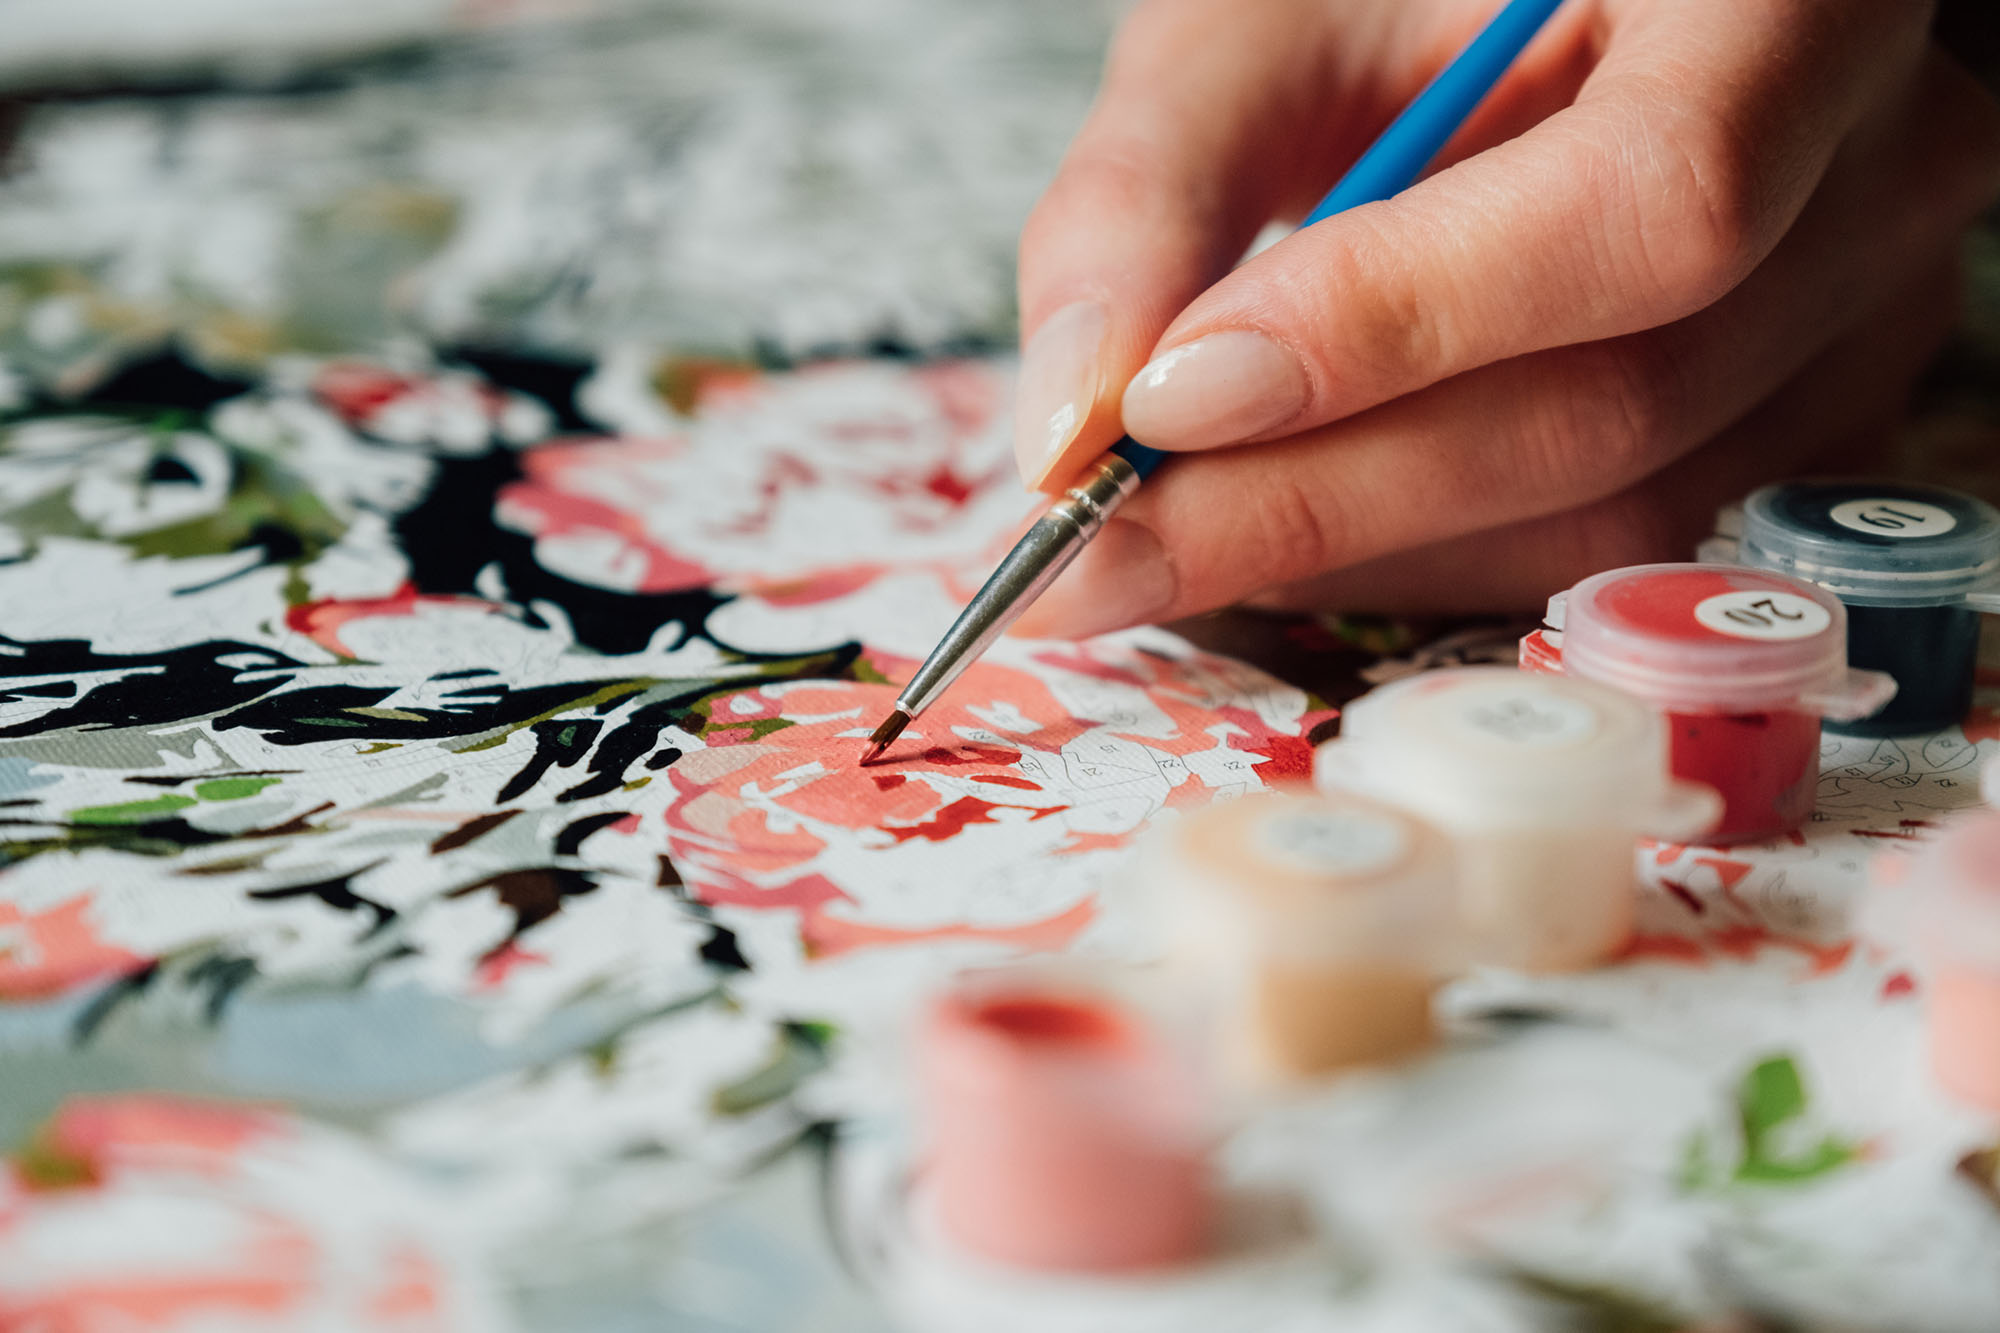 Get Creative With Painting By Numbers